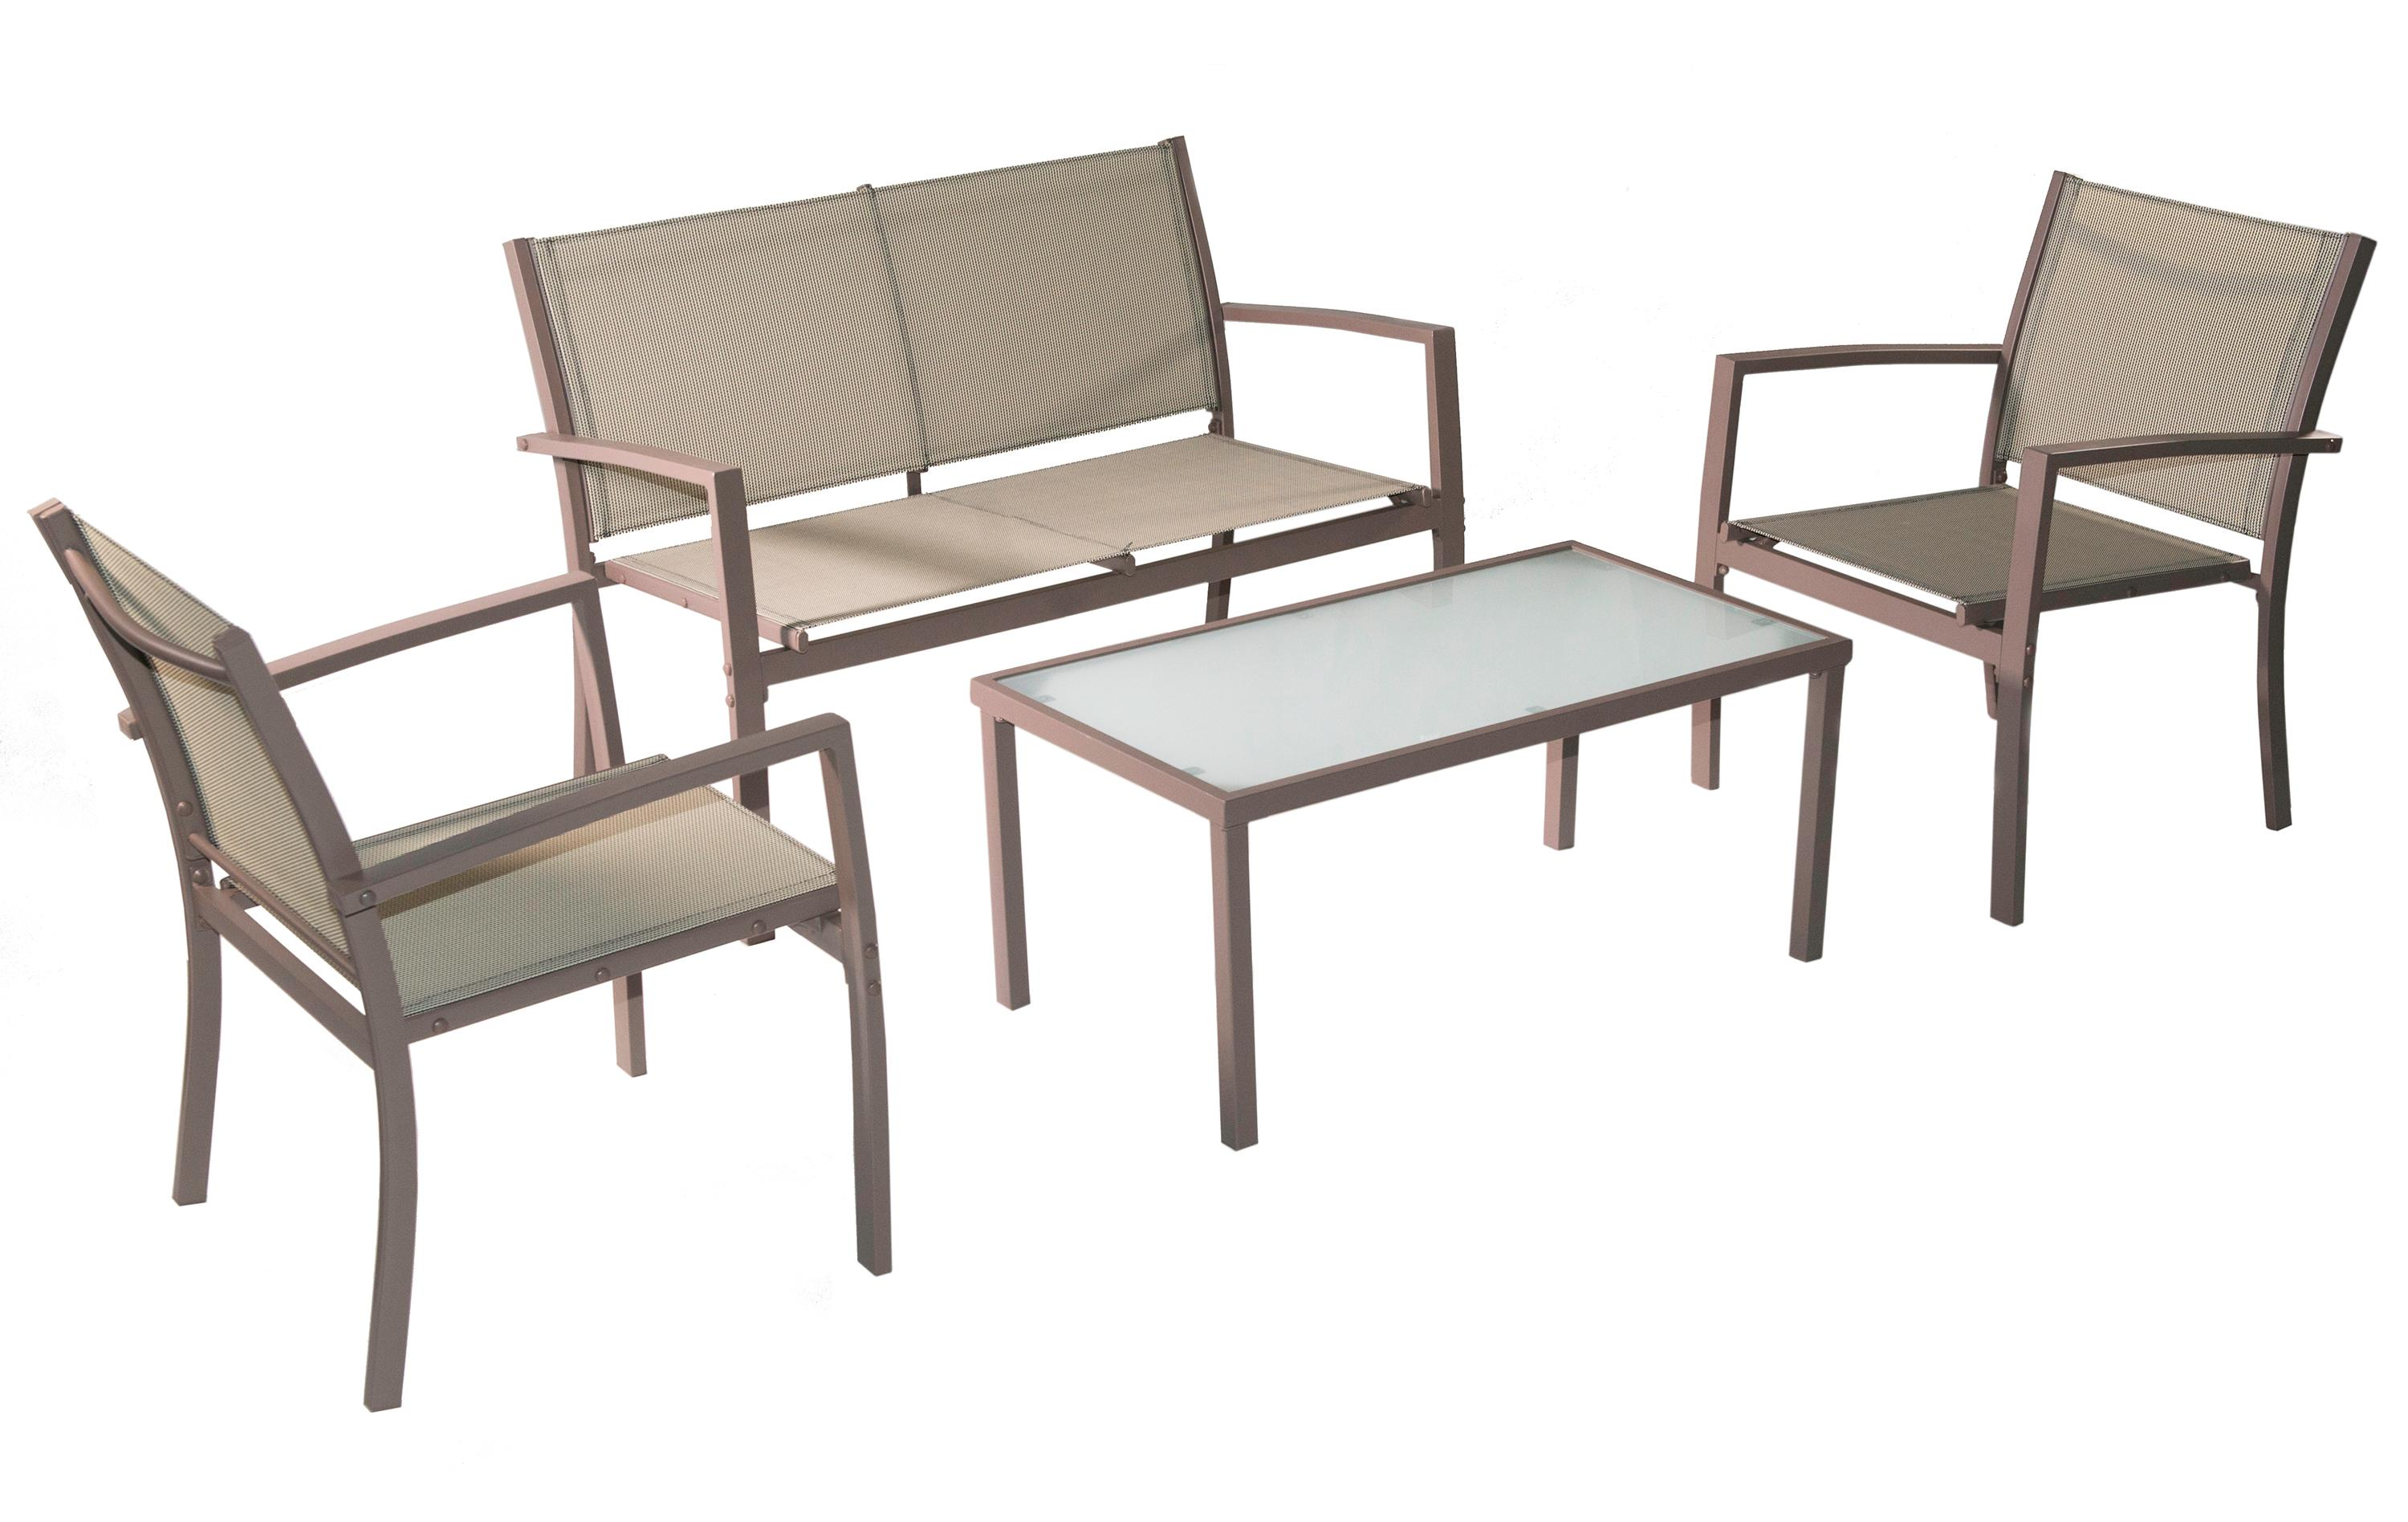 Amazon Com Traxion 4 211 Outdoor Patio Furniture Set Beige Garden